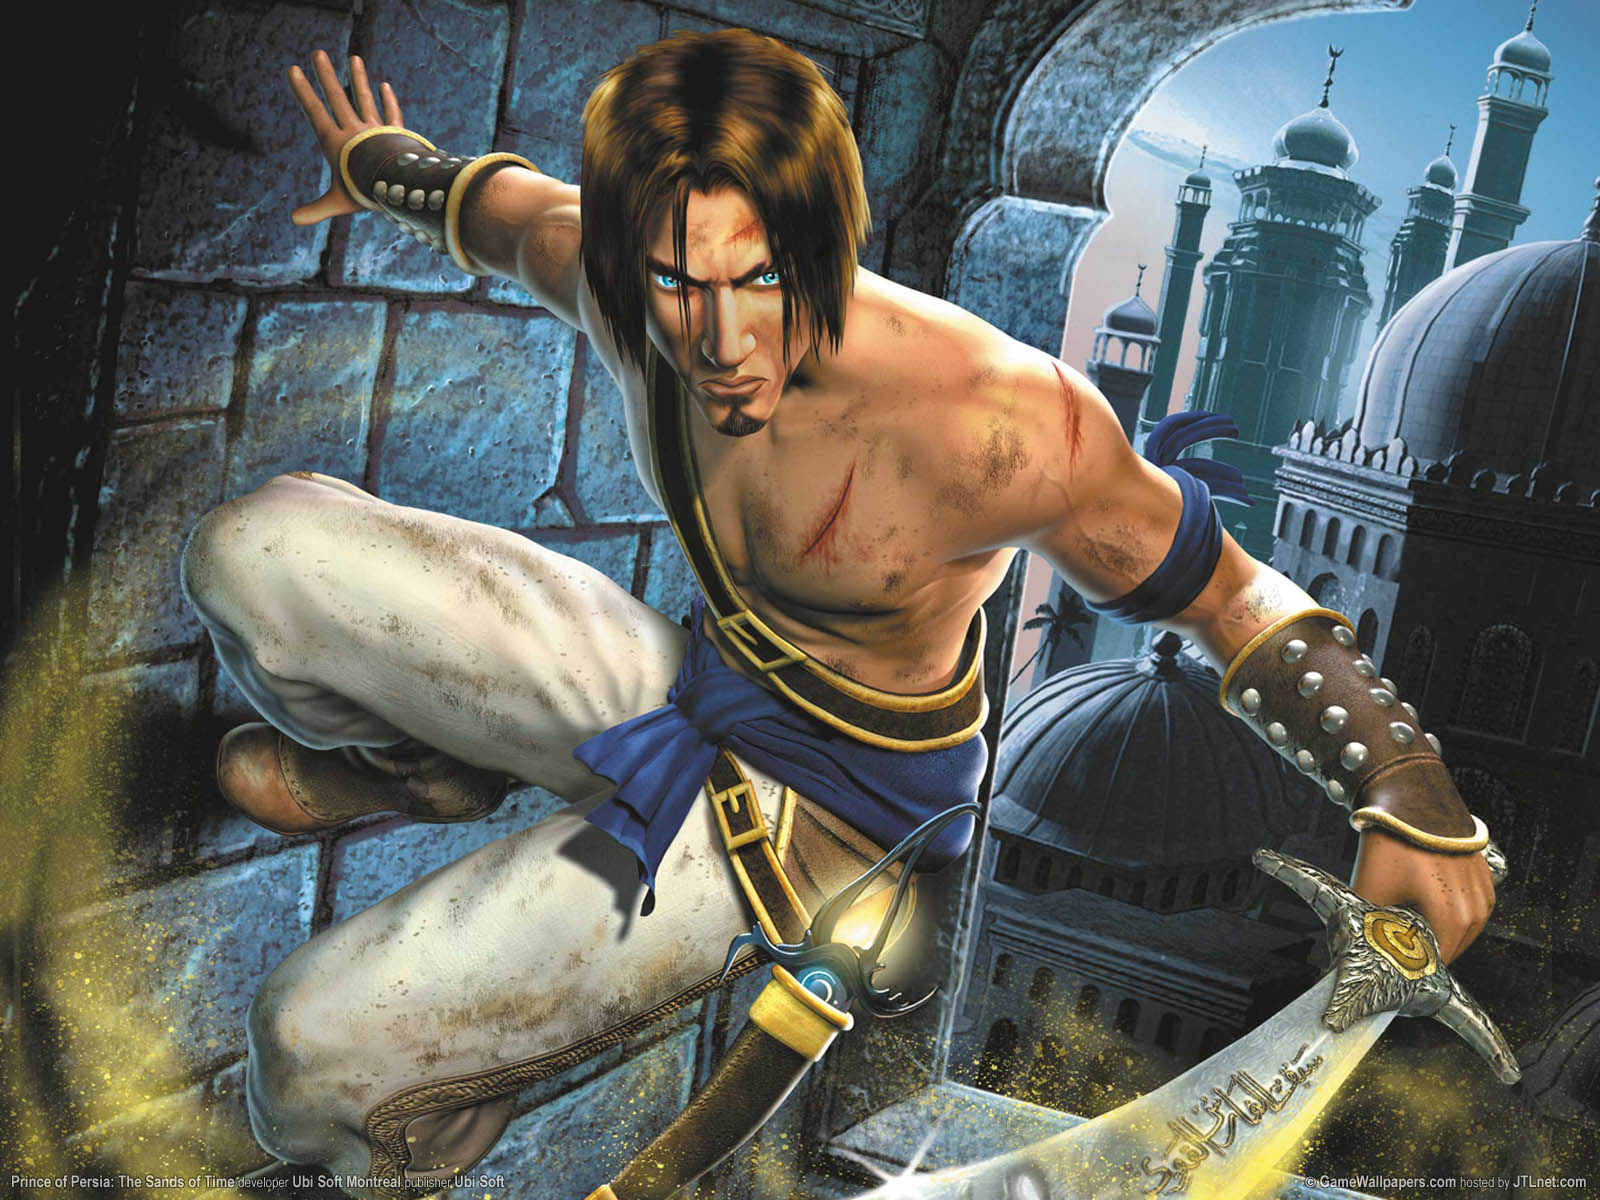 Prince of Persia: The Sands of Time Hintergrundbild 03 1600x1200